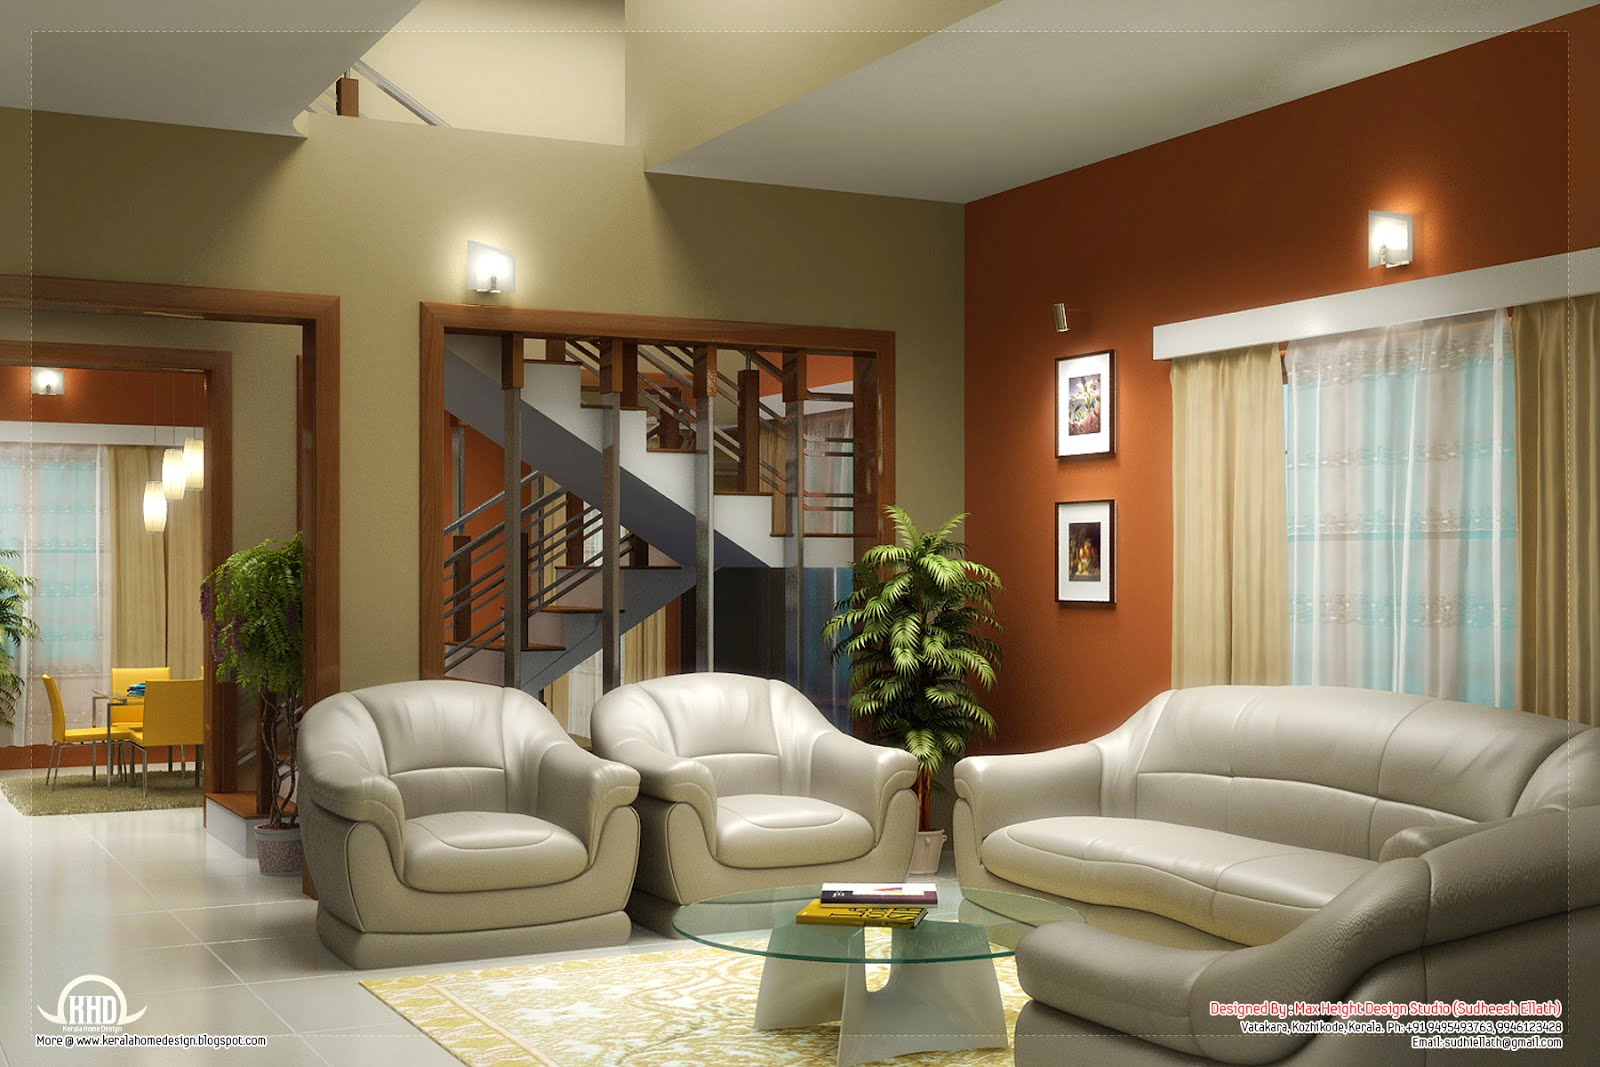 beautiful living room rendering kerala home design and floor plans. Black Bedroom Furniture Sets. Home Design Ideas